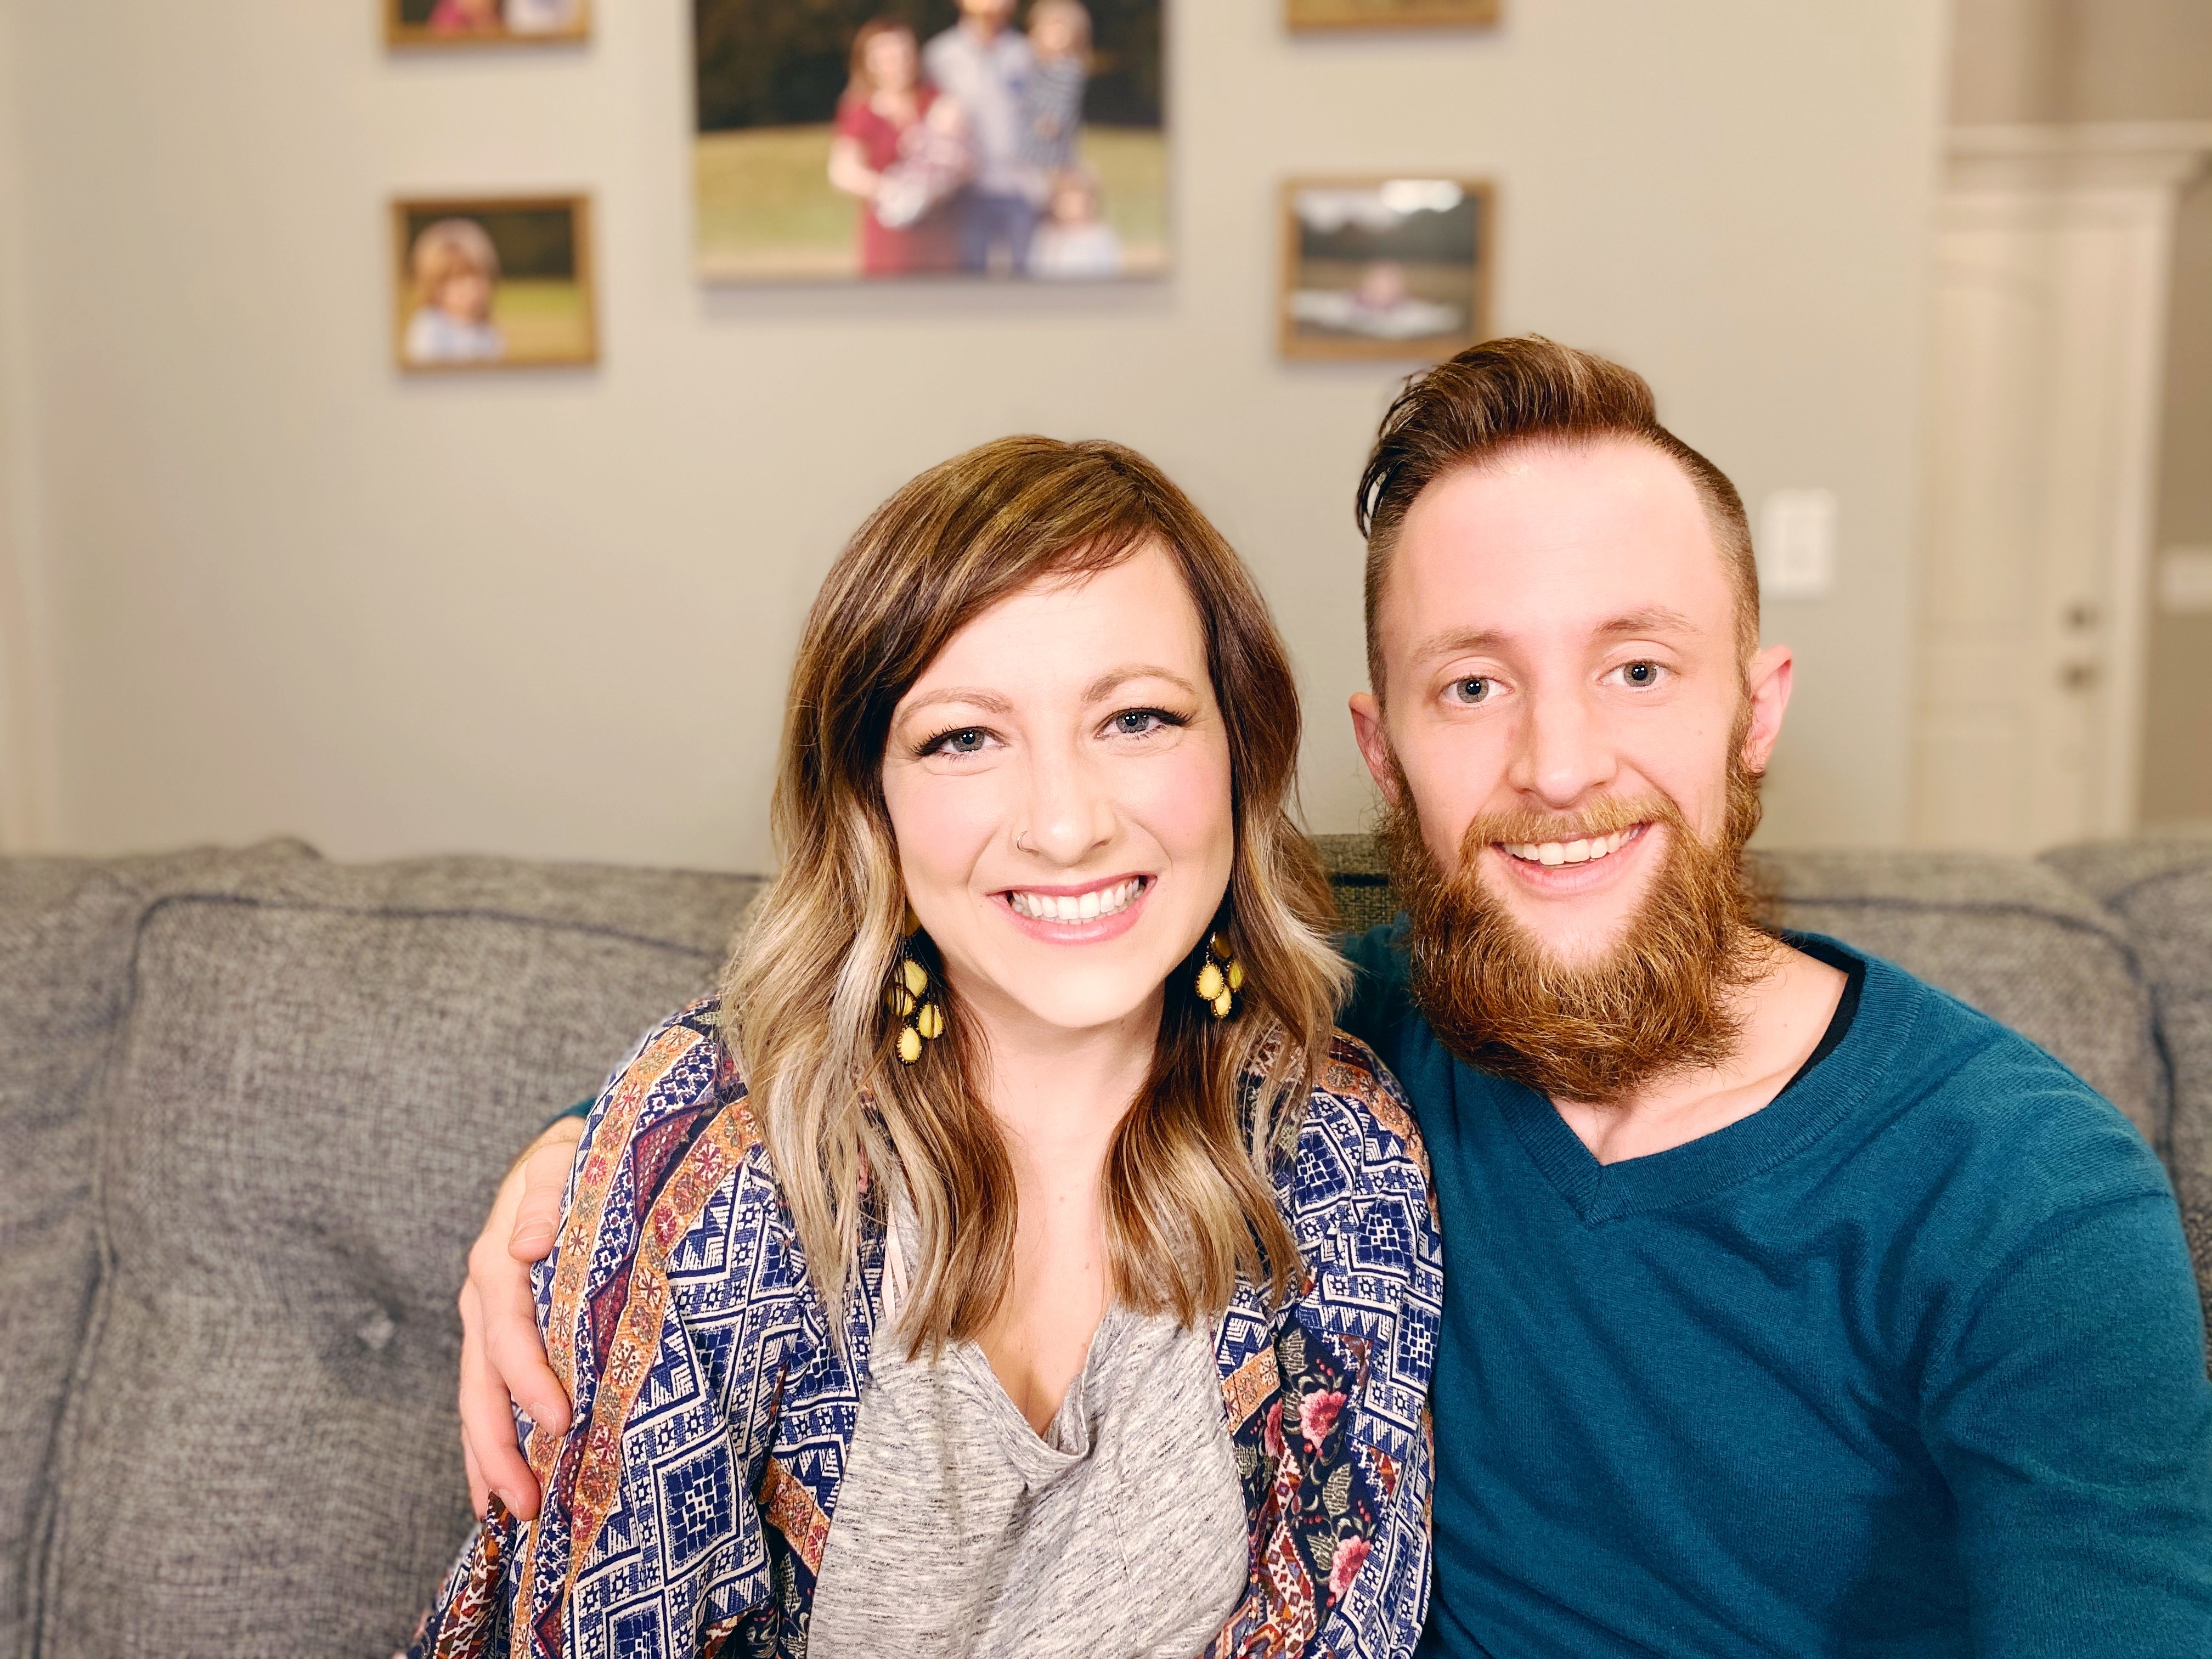 Ben Lagrone and Jessica Lagrone The Balanced Birth Couple